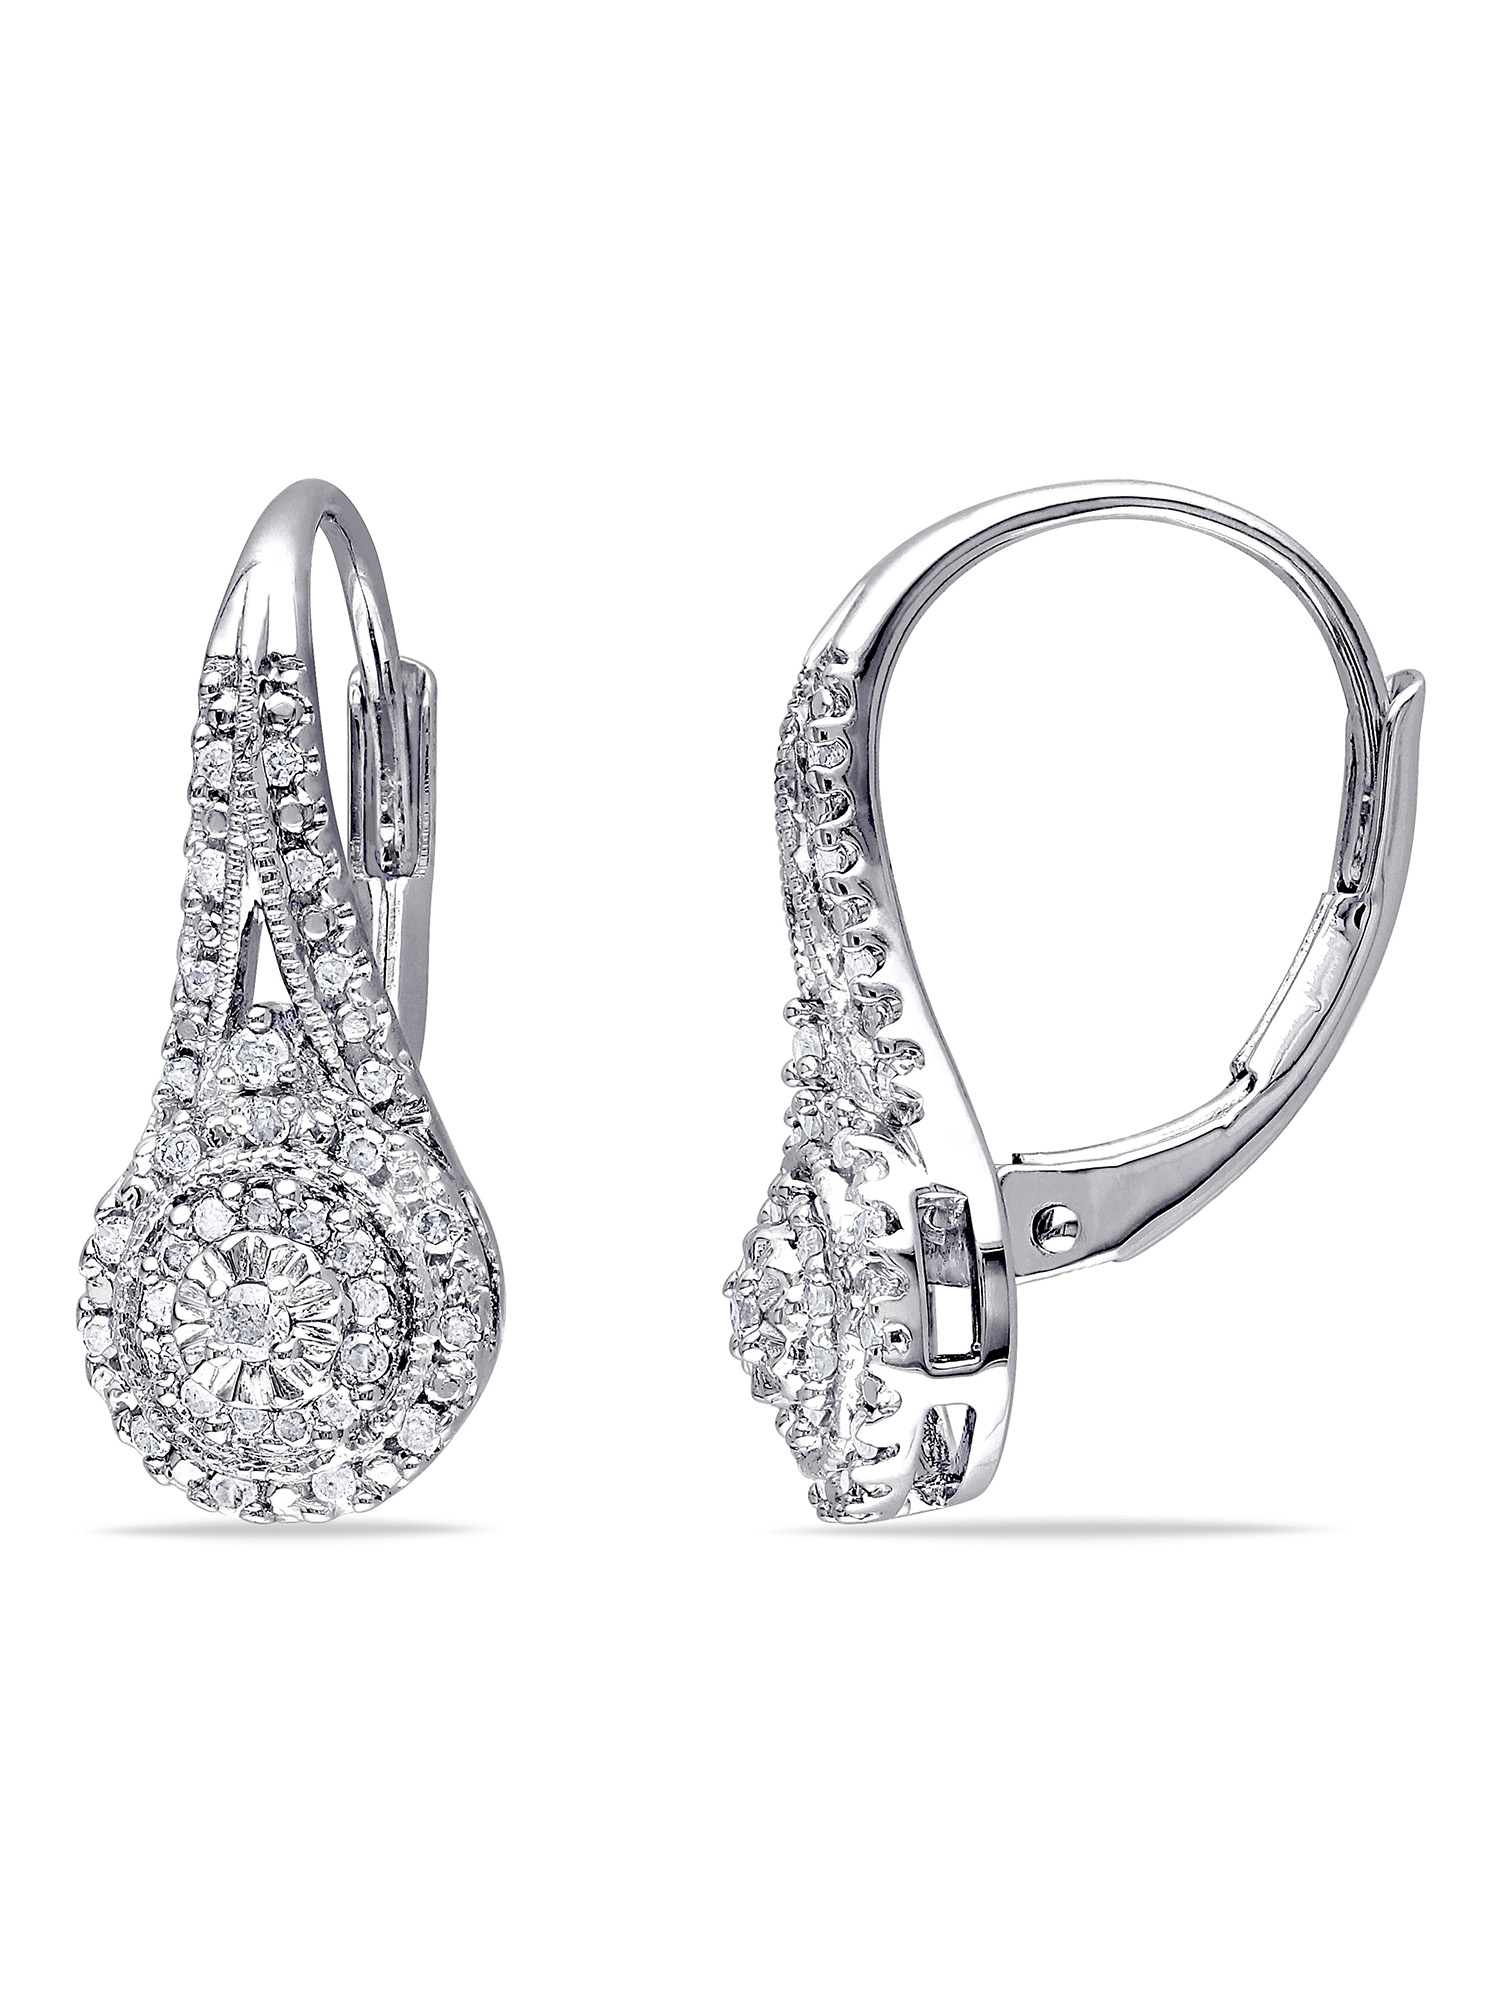 001b3a9da Miabella - 1/4 Carat T.W. Diamond Sterling Silver Double Halo Earrings -  Walmart.com